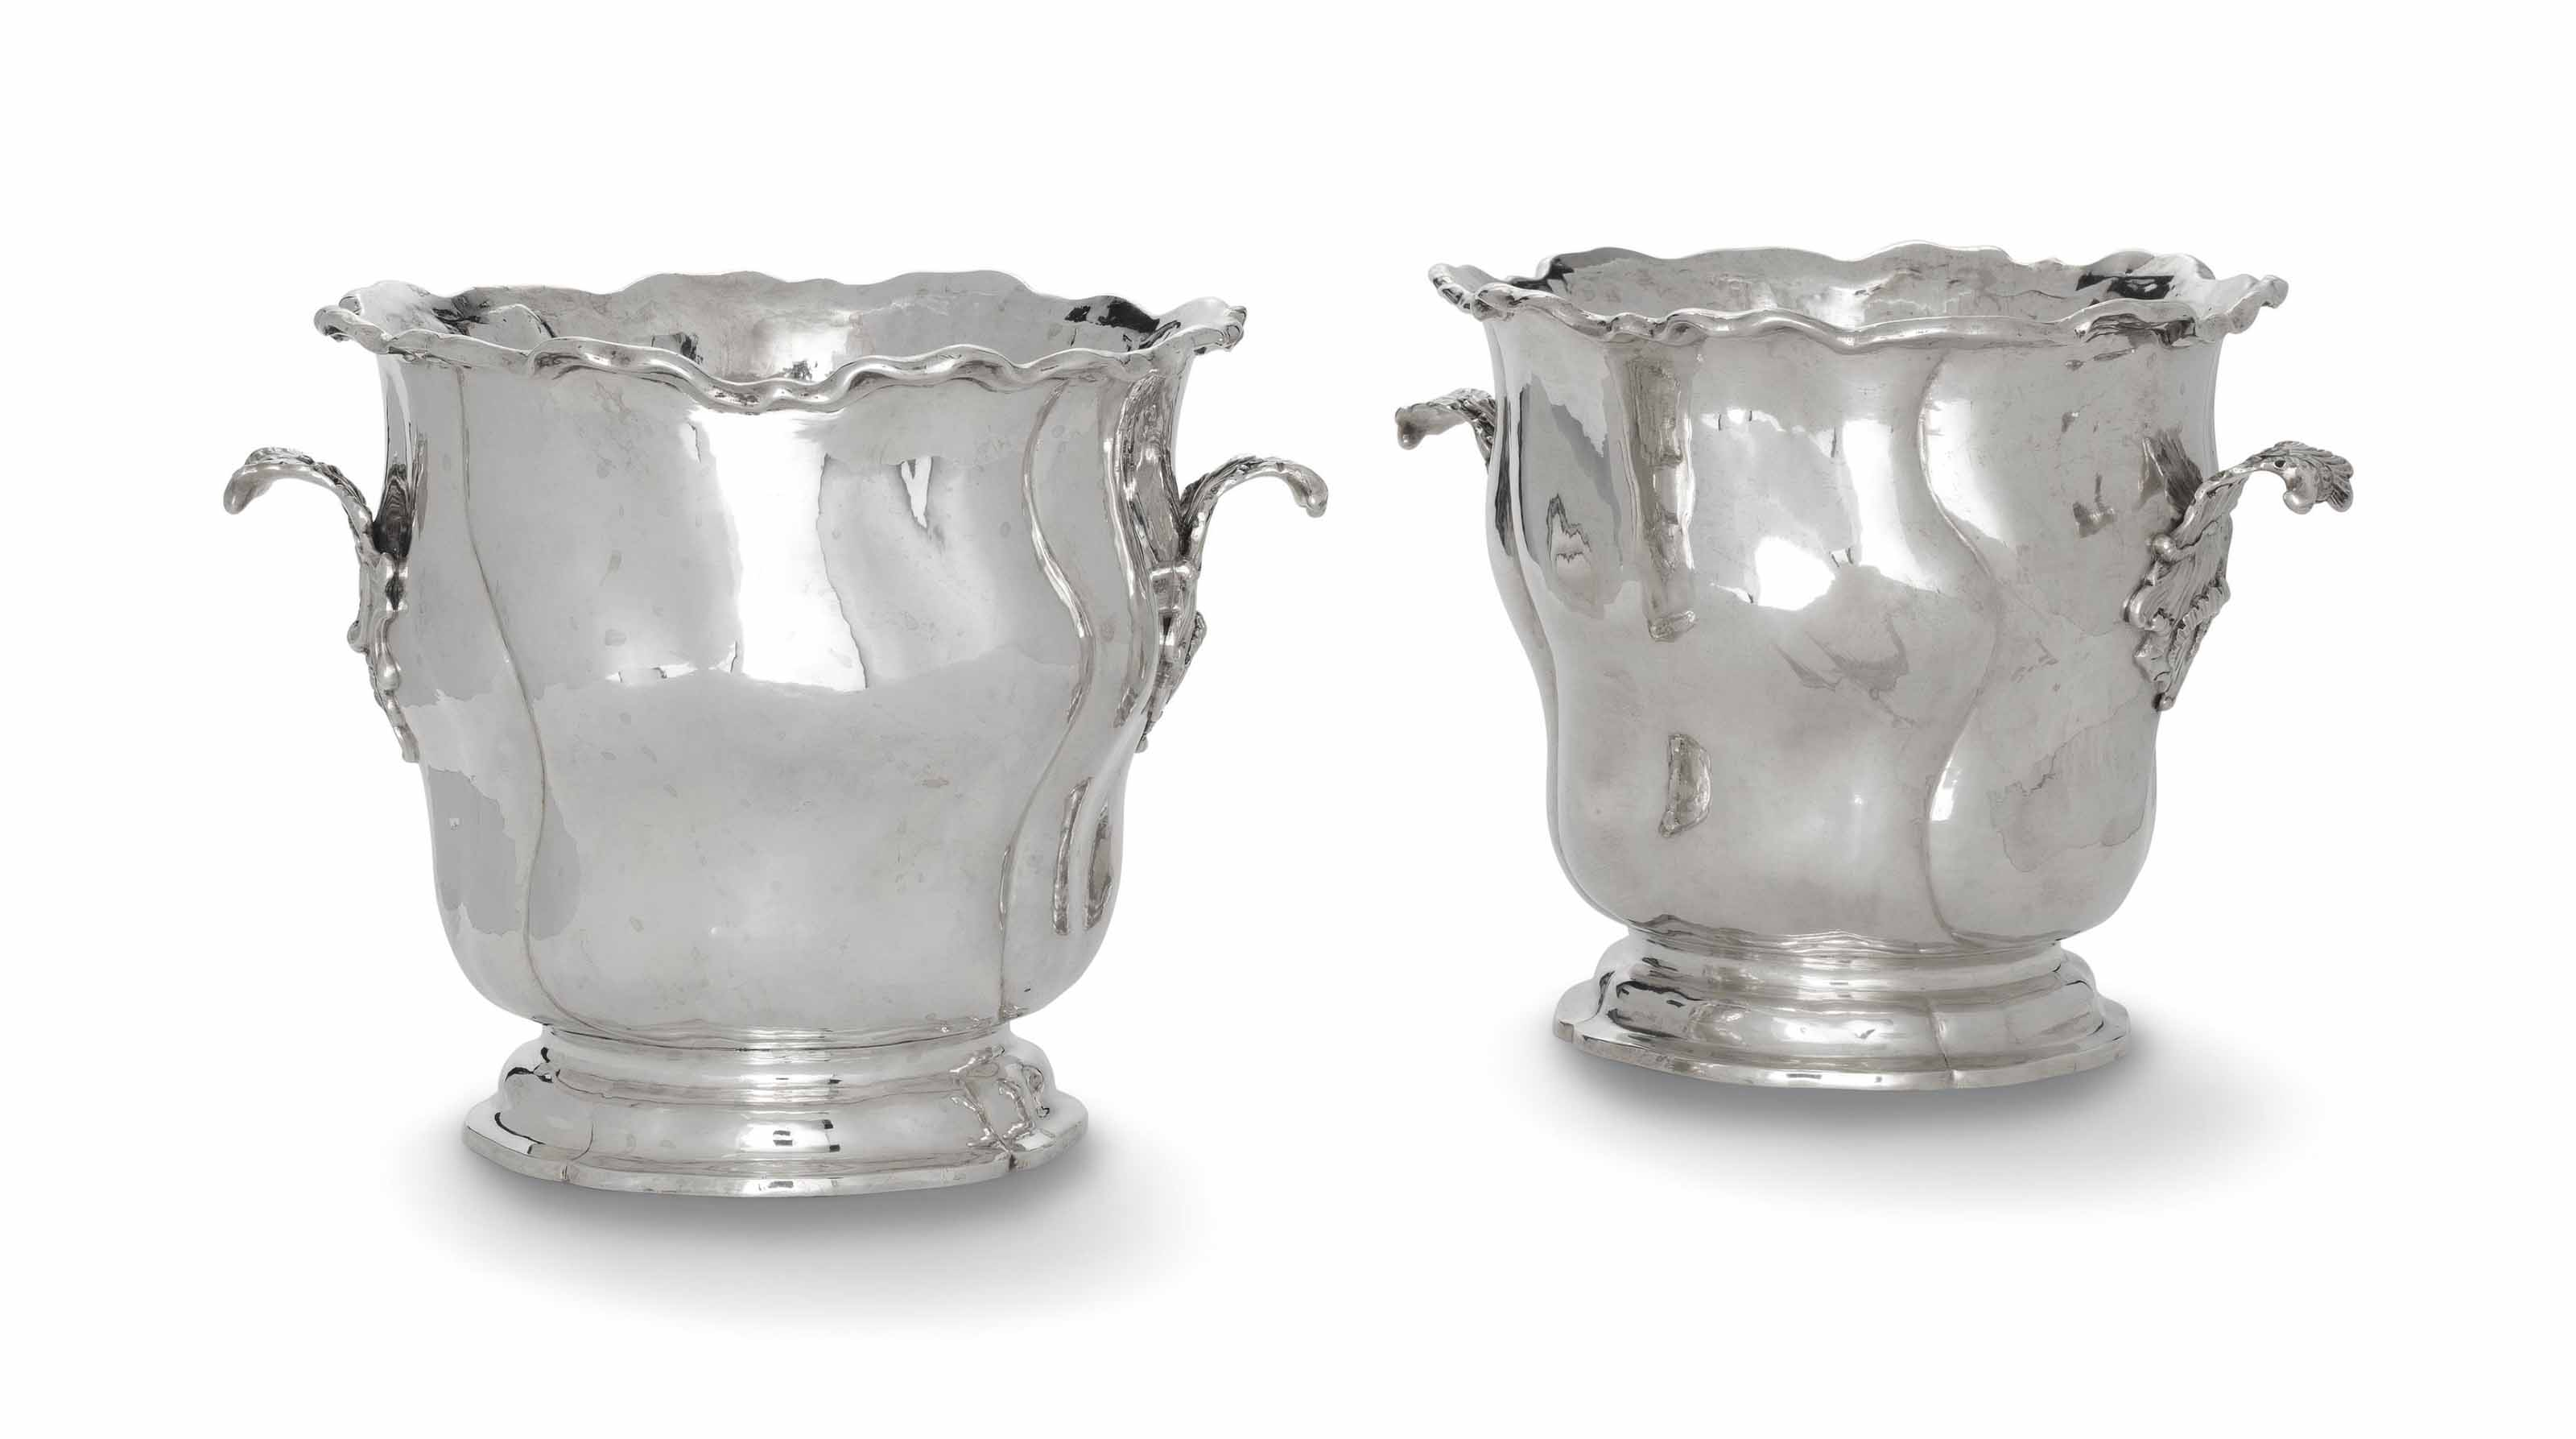 A PAIR OF GERMAN SILVER ICE-PAILS